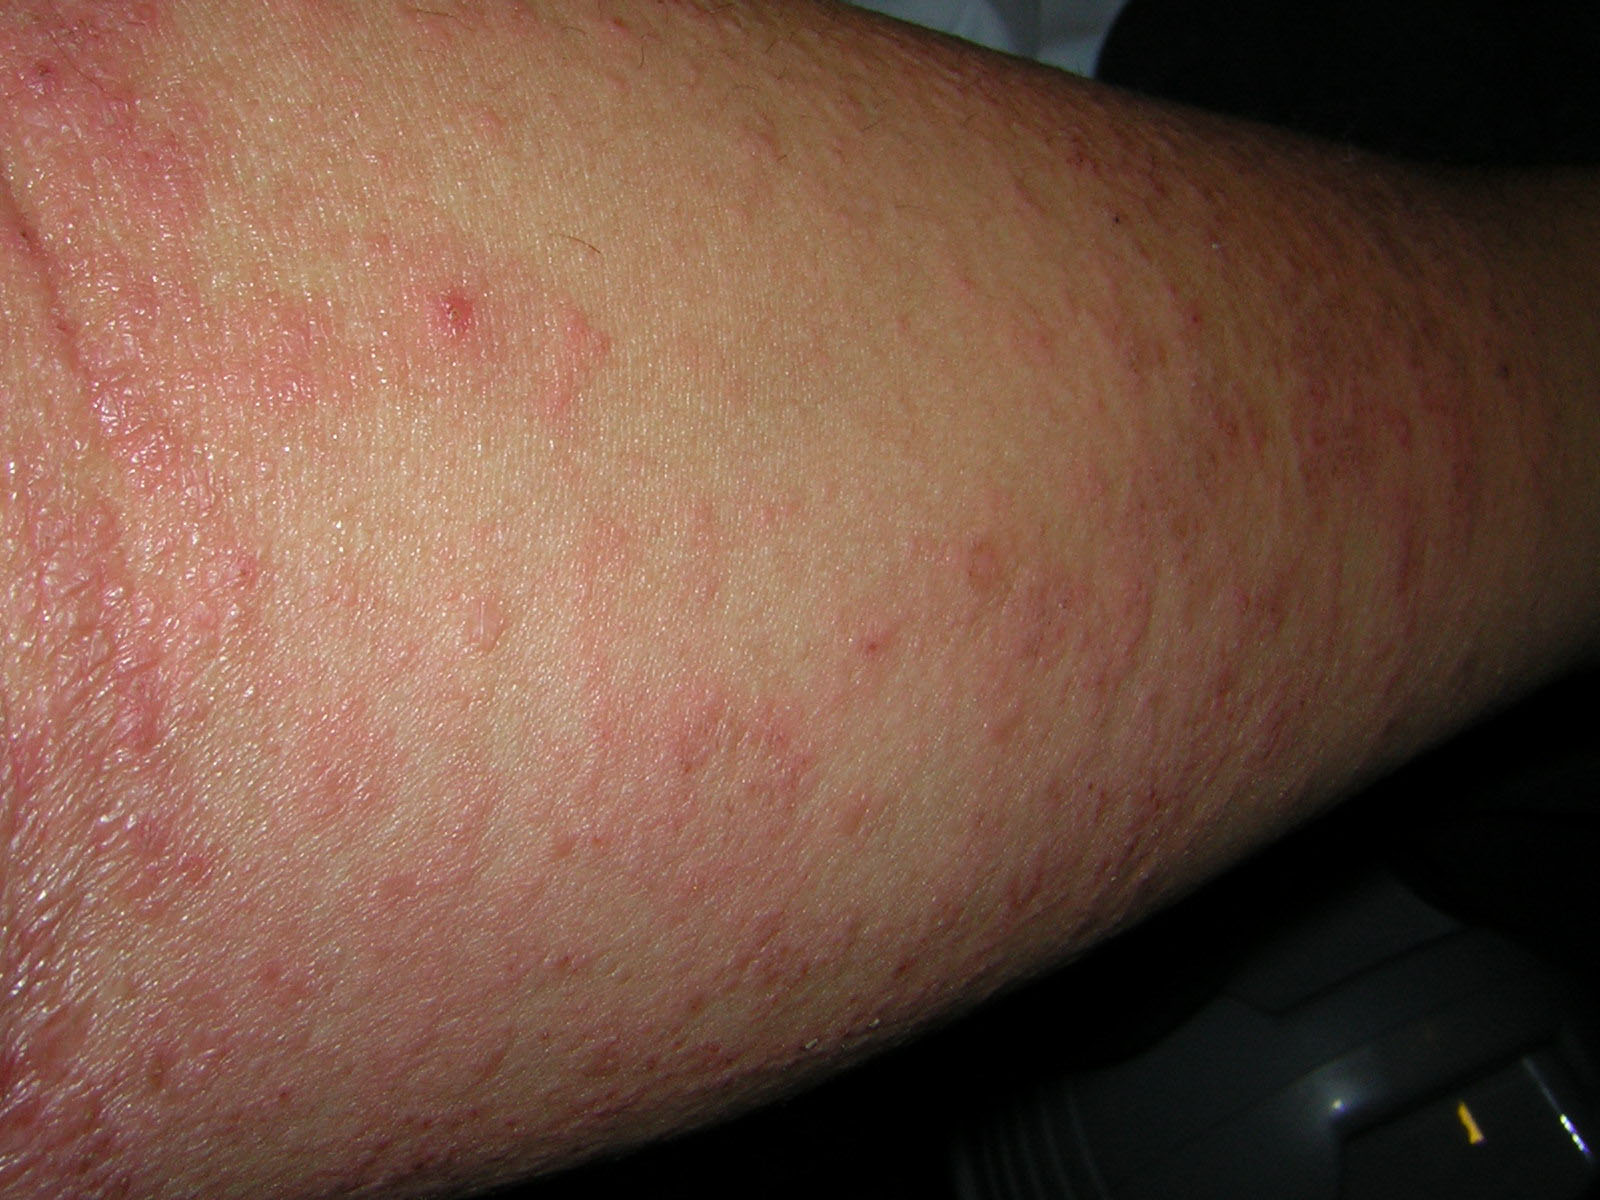 Scabies American Academy of Dermatology